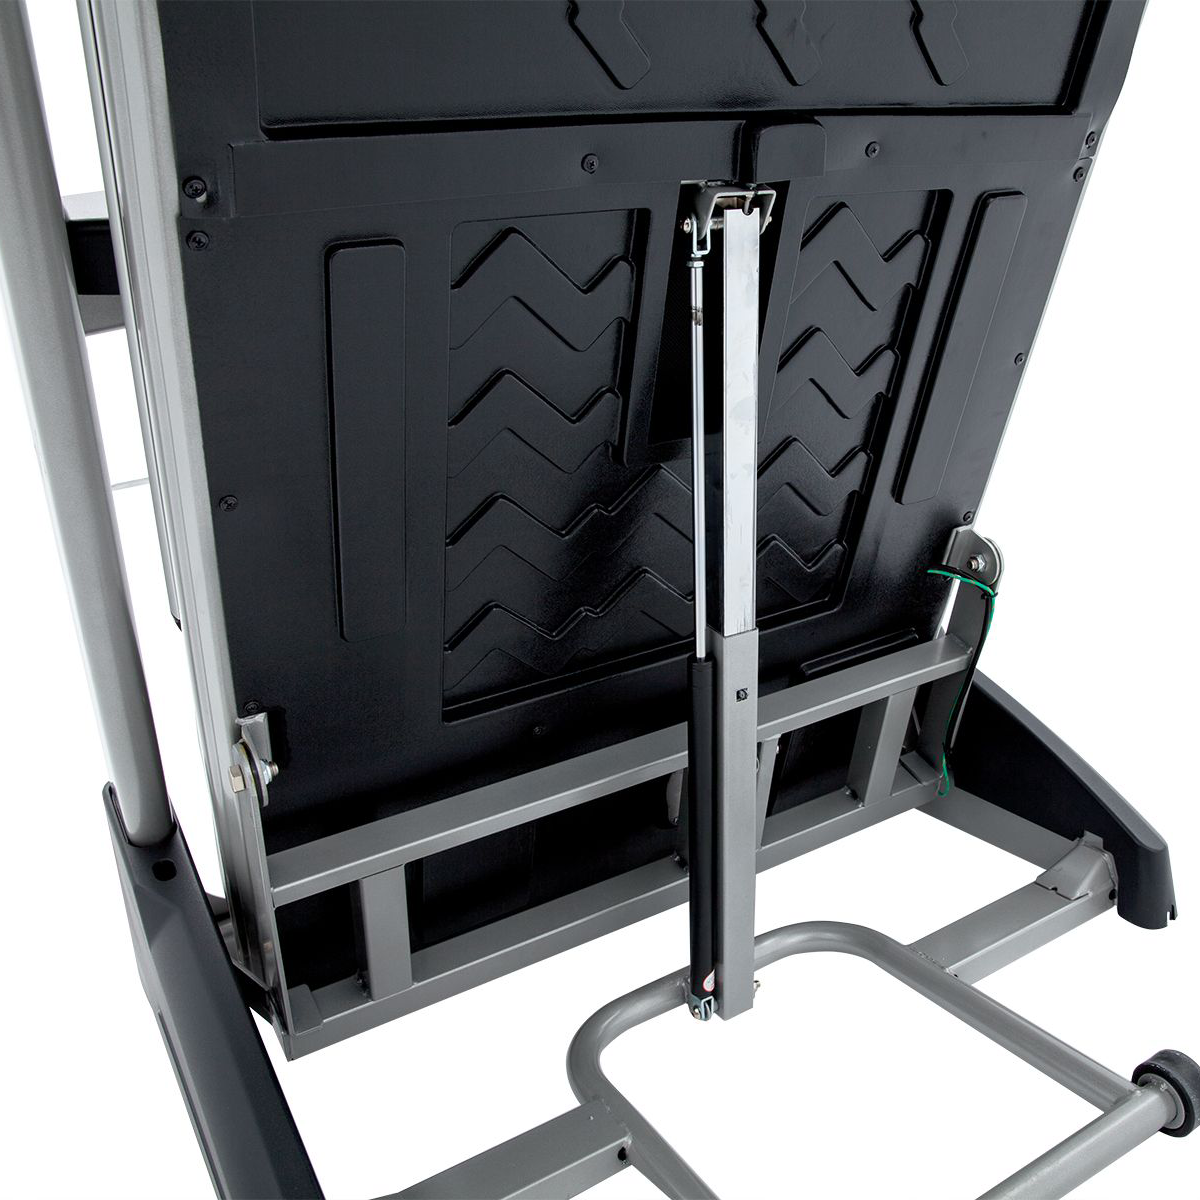 View from under the running deck of Spirit Fitness XT385 treadmill in folded position